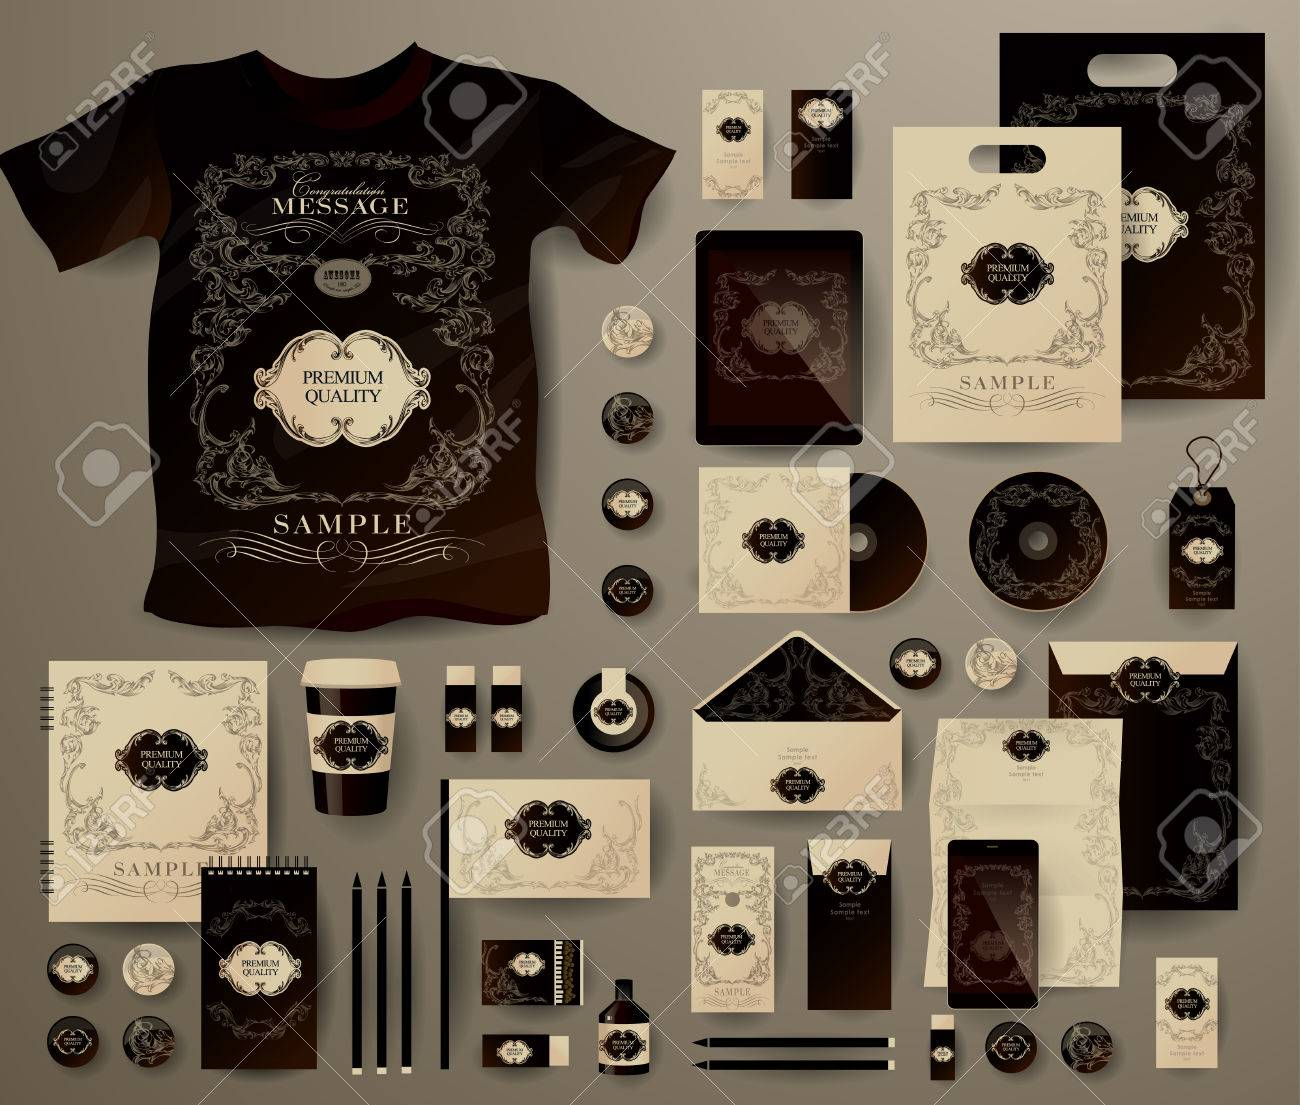 Abstract business set in decorative, vintage style. Corporate identity templates, notebook, card, flag, T-shirt, disk, package, label, envelope, pen, Tablet PC, Mobile Phone, matches, ink, pencil, paper cup, forms, folders for documents, invitation card - 43046443